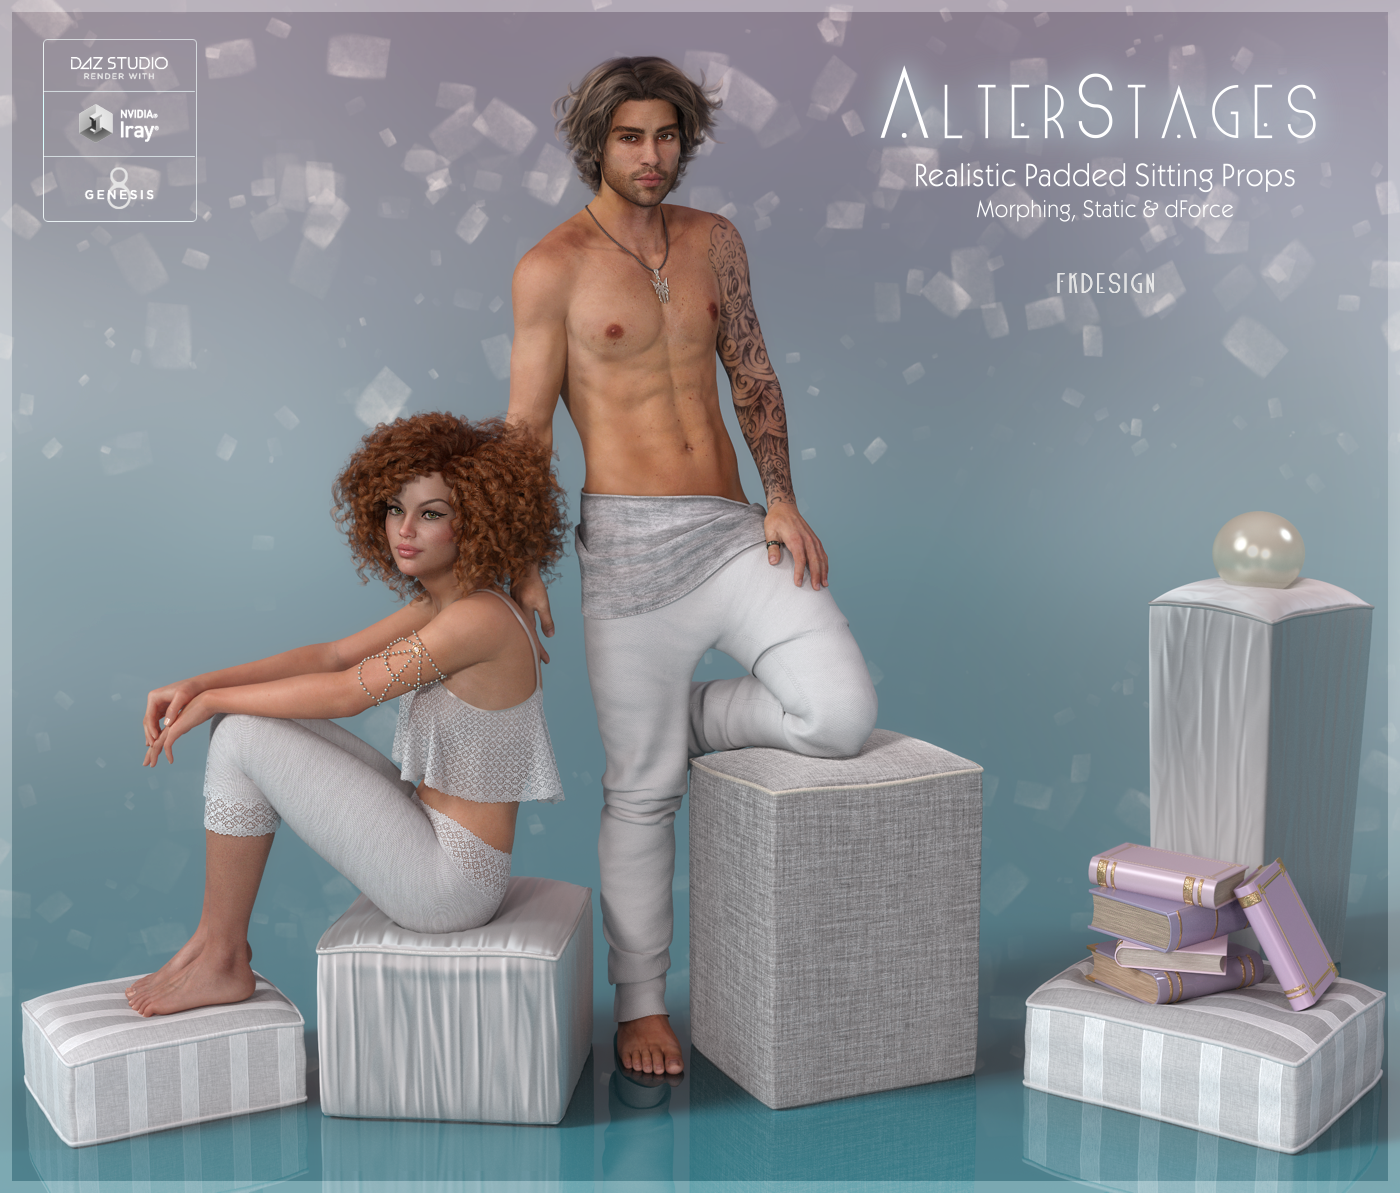 AlterStages - Padded Sitting Props by fabiana